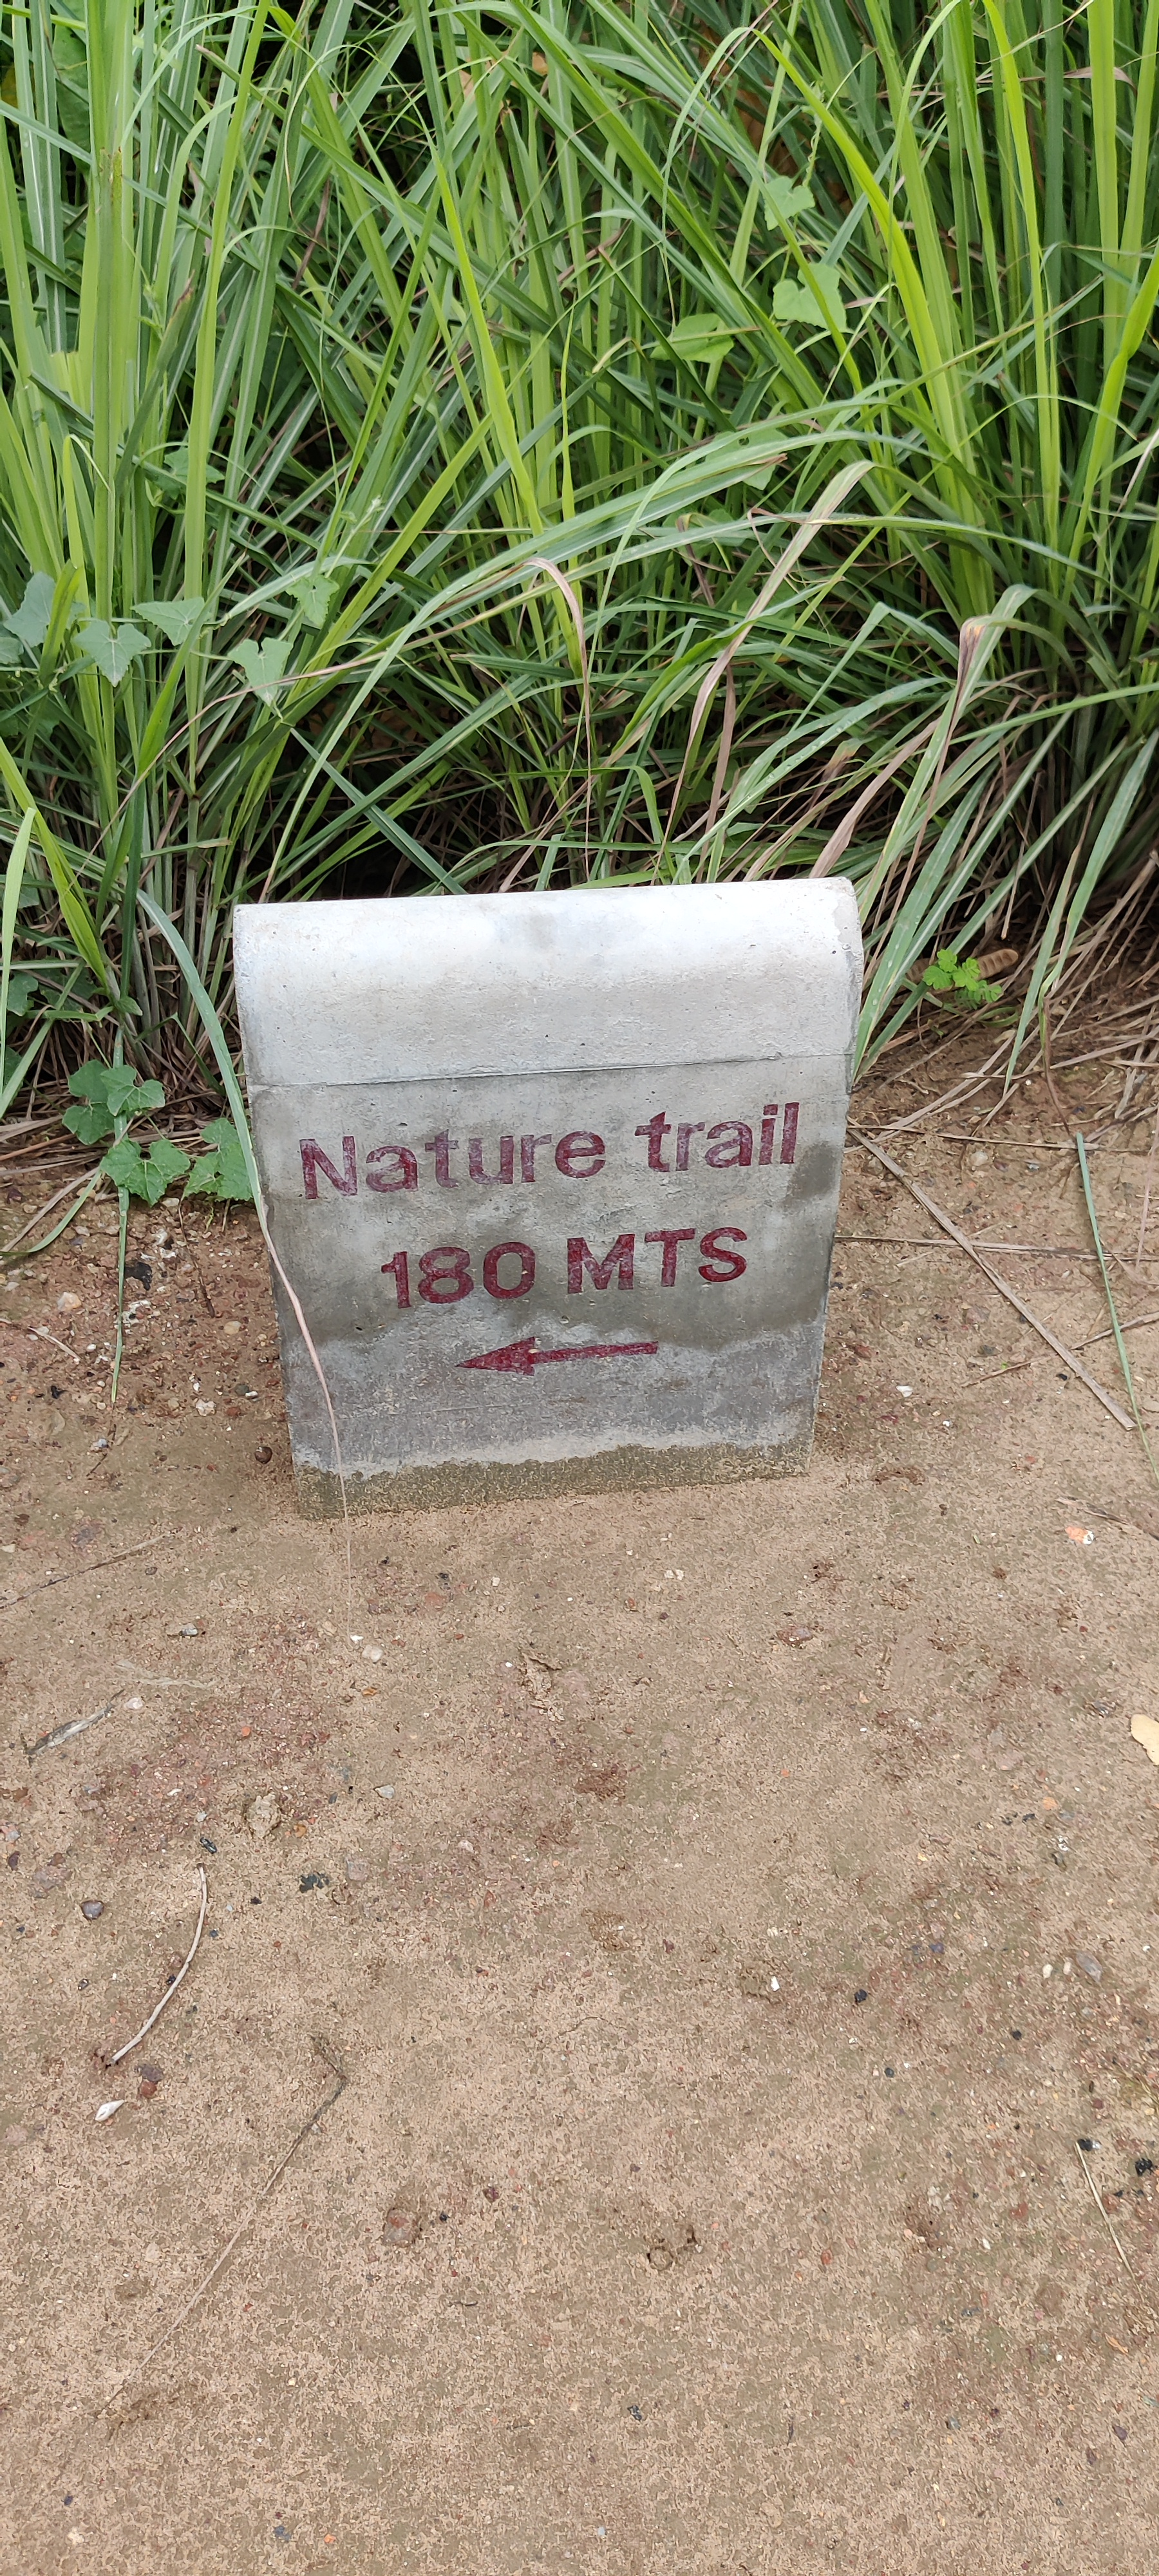 Nature trail at Symphony forest park